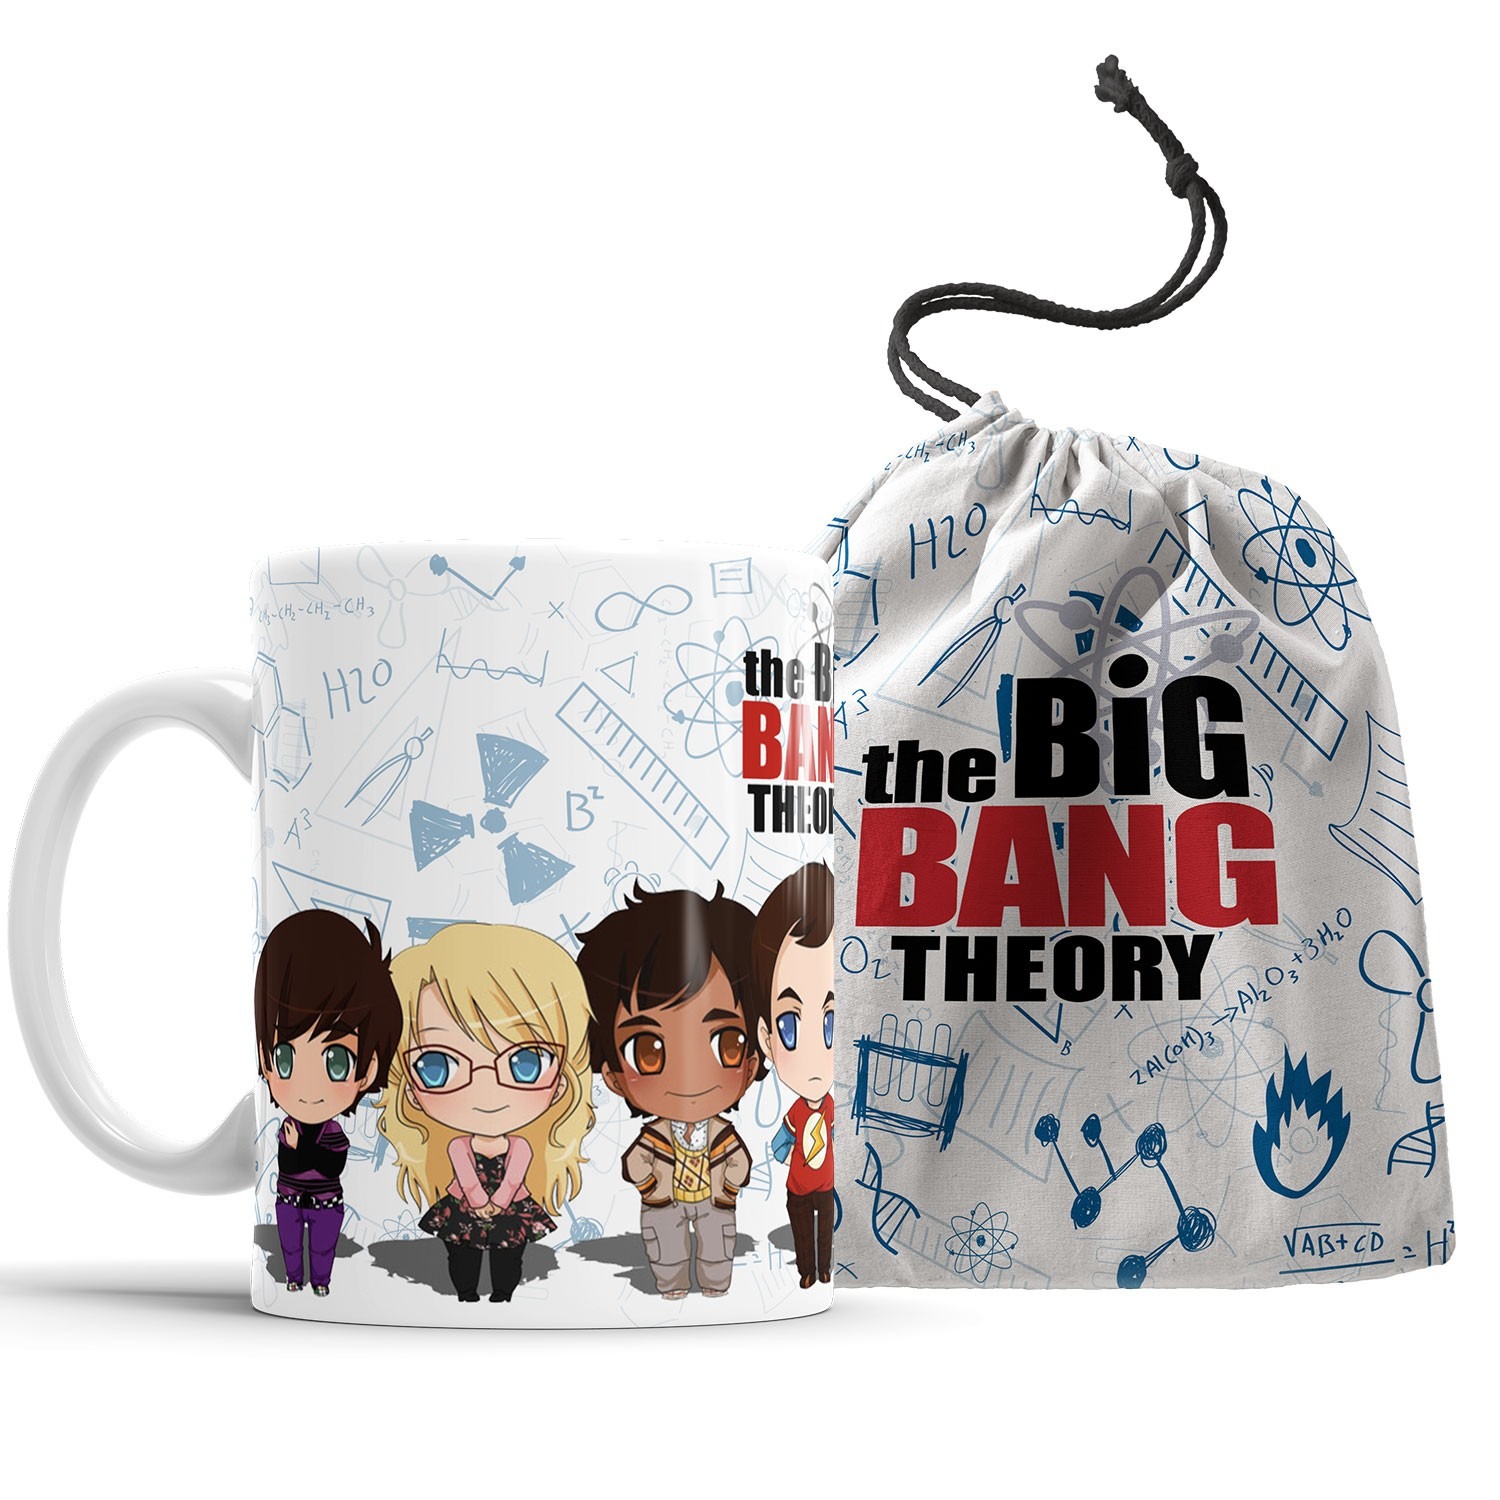 Caneca The Big Bang Theory + Saquinho